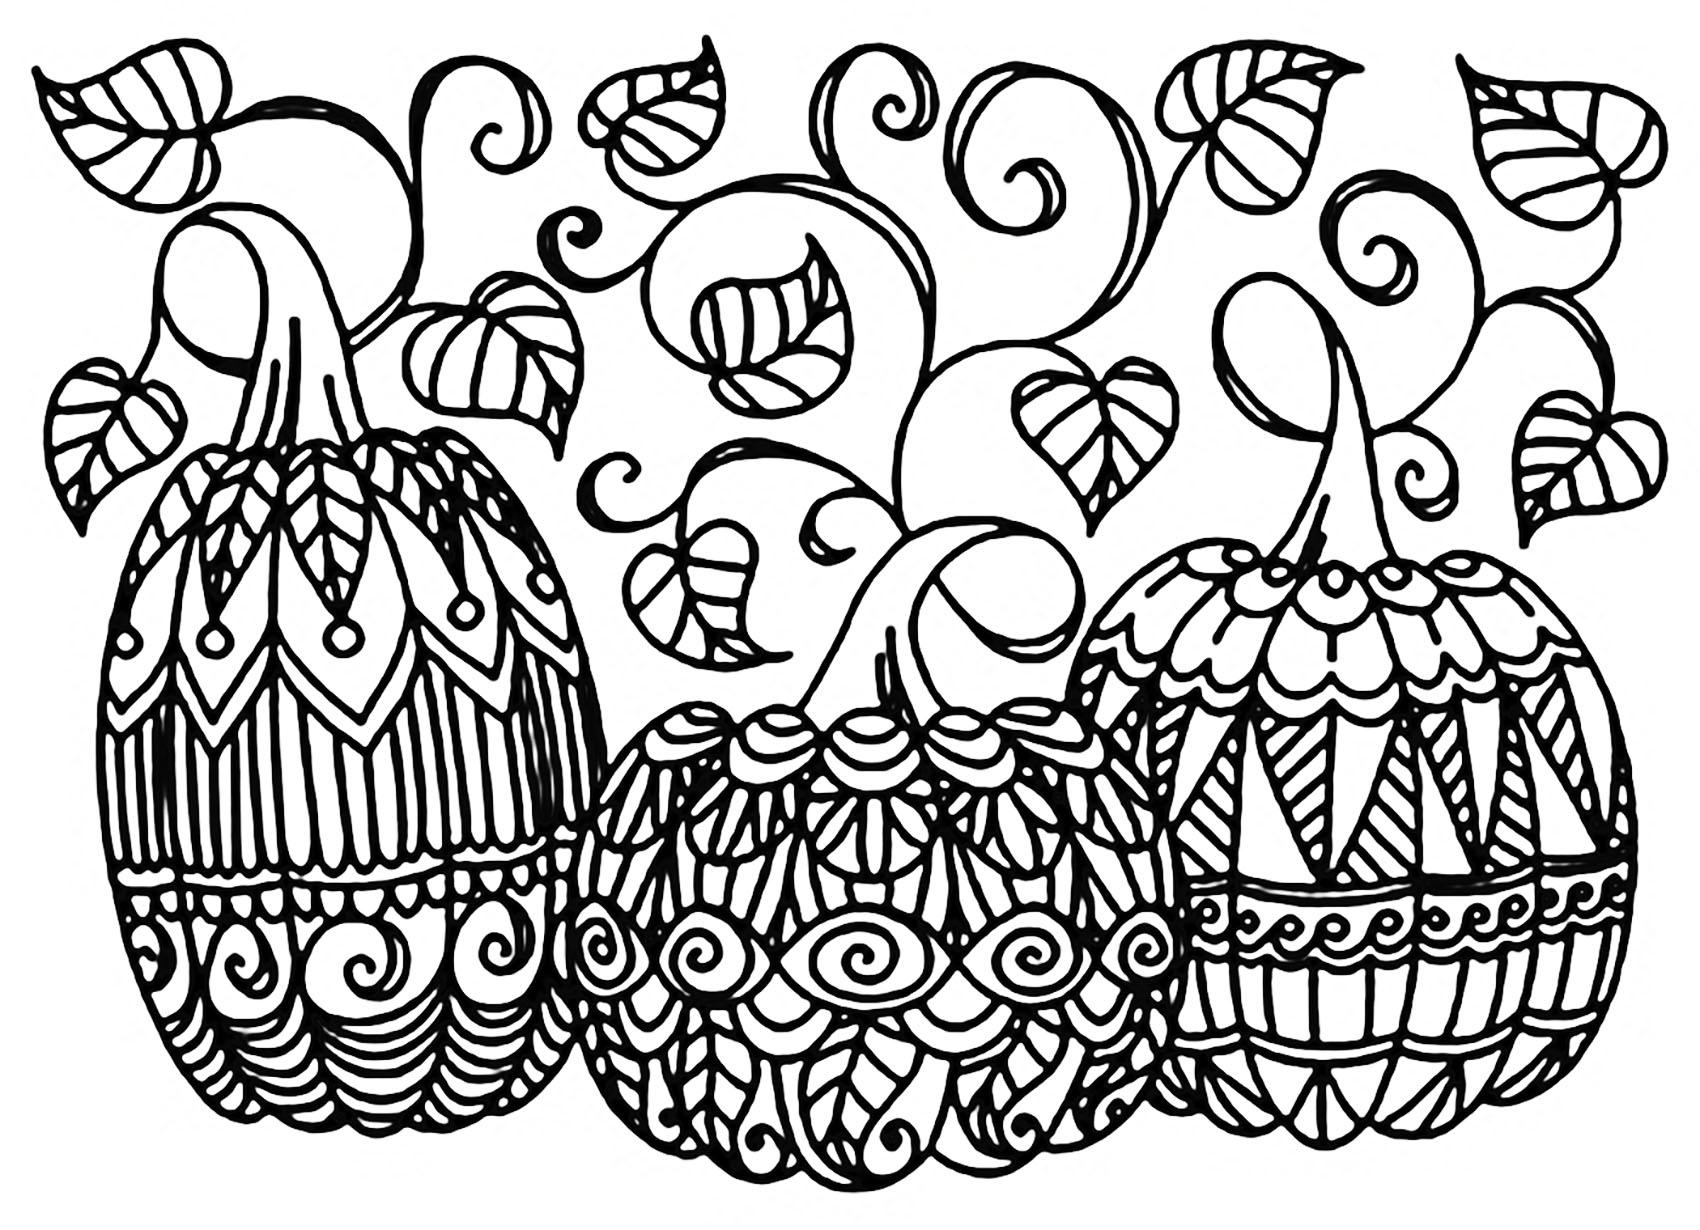 Halloween three pumpkins | Halloween - Coloring pages for adults ...